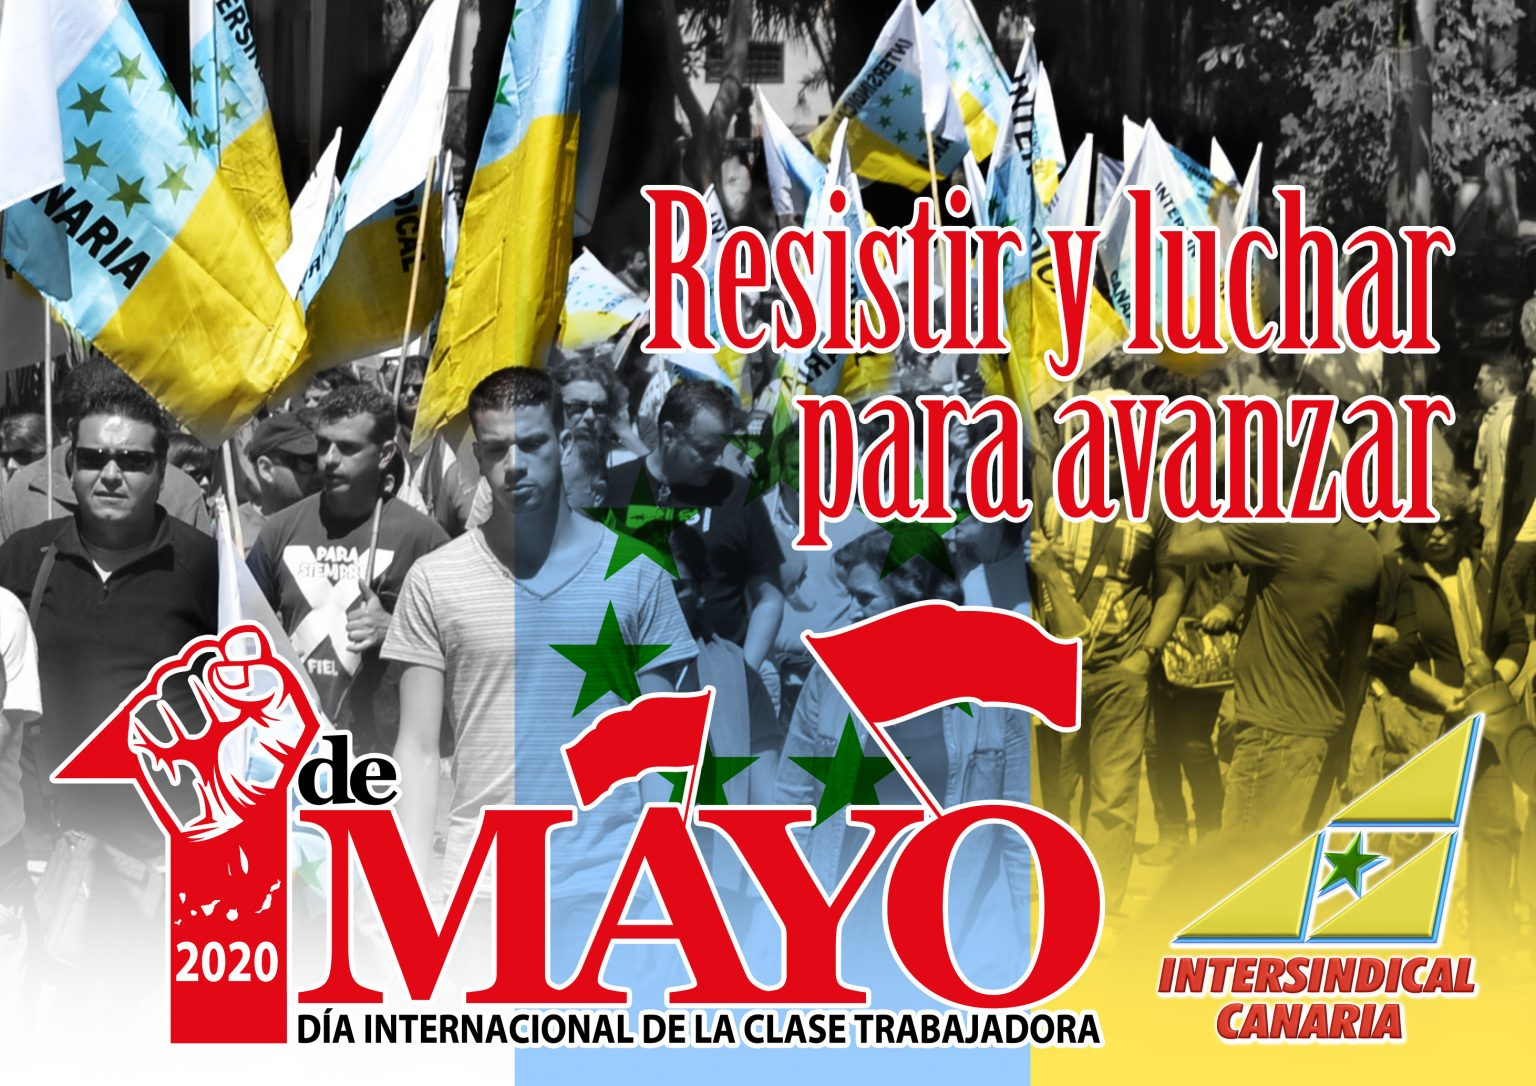 CARTEL 1 MAYO INTERSINDICAL